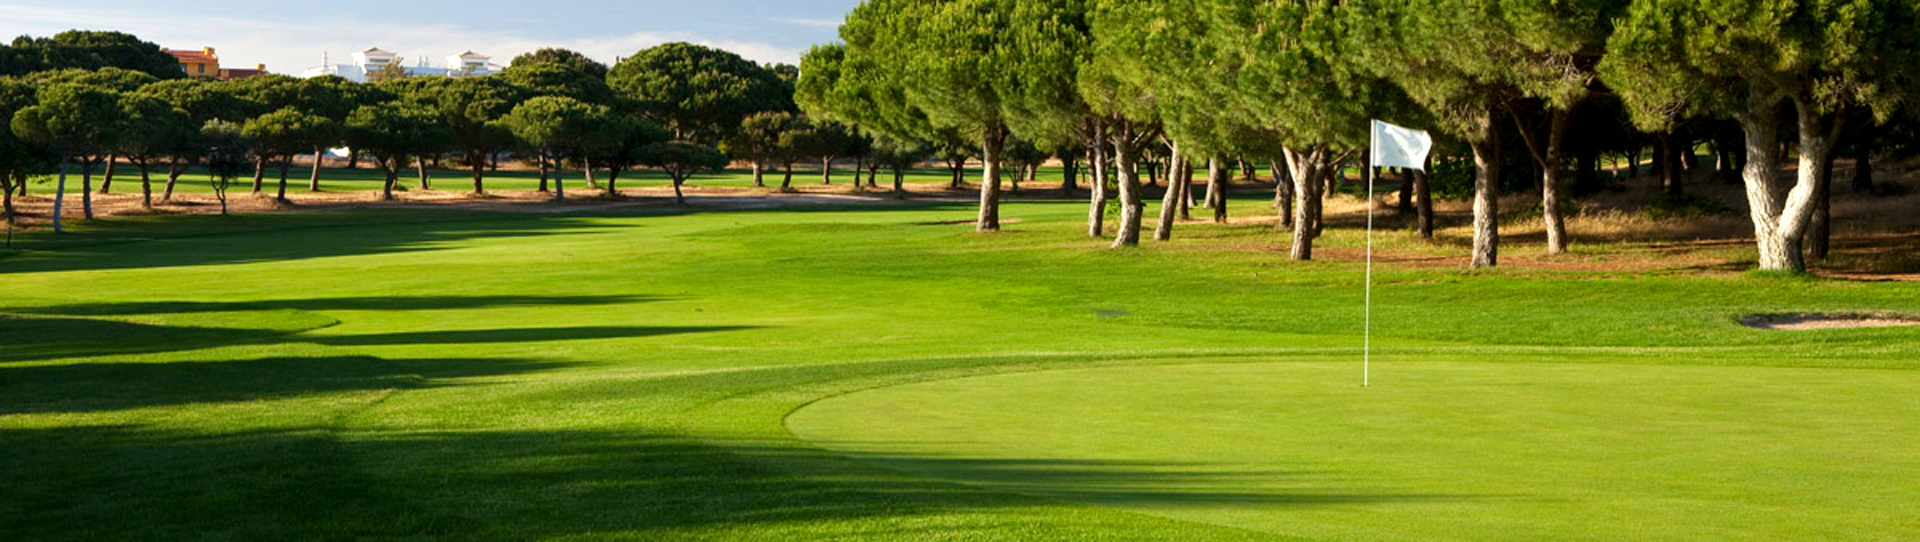 Vilamoura Tailor-made Classic Golf Package - Photo 2